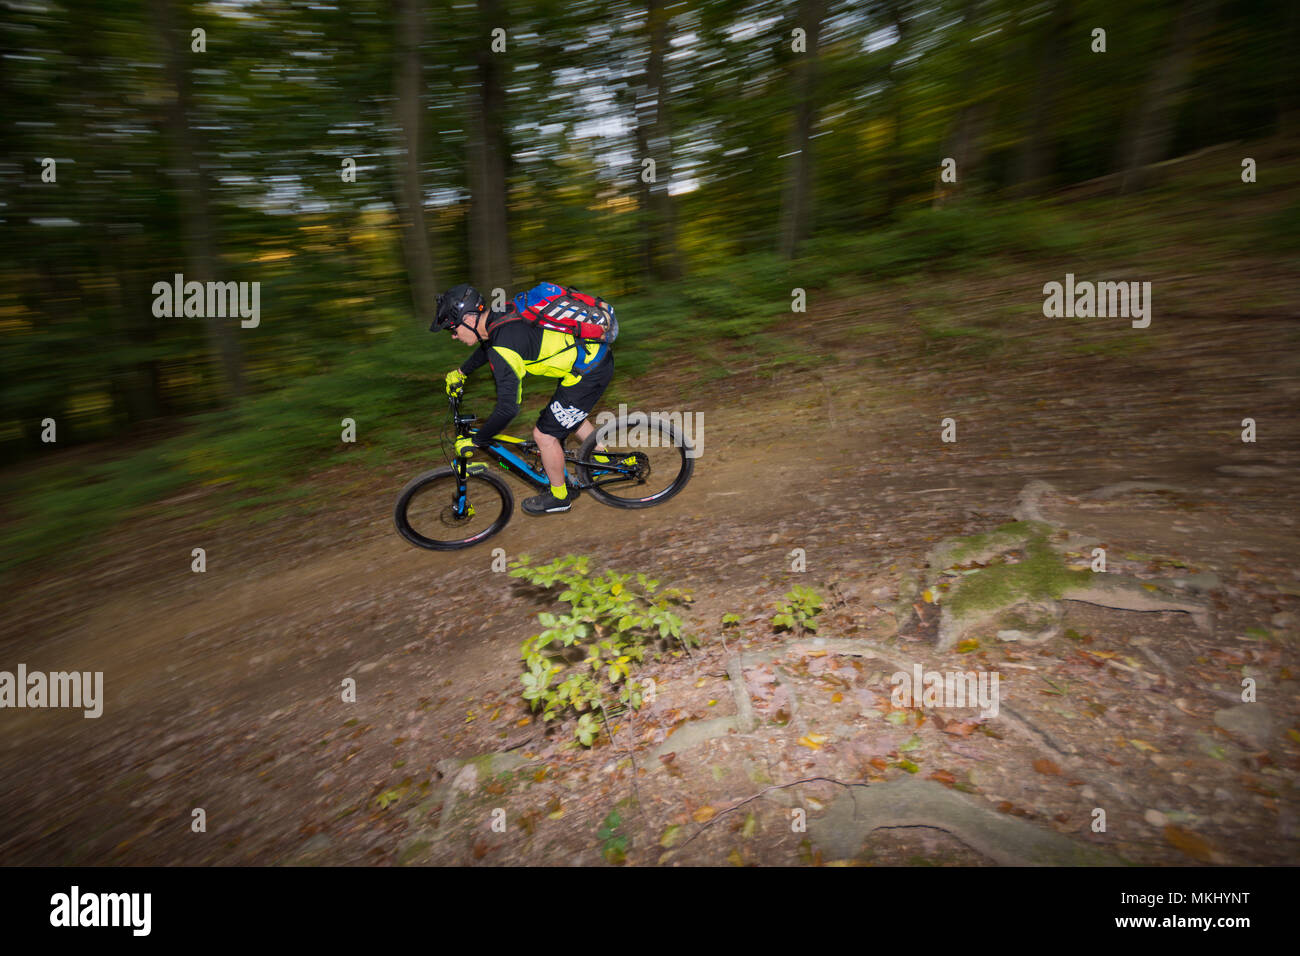 Man on e-bike in Vienna Woods rides fast along downhill trail through dark dusky autumn forest. Side view of athletic cyclist with motion blur. - Stock Image